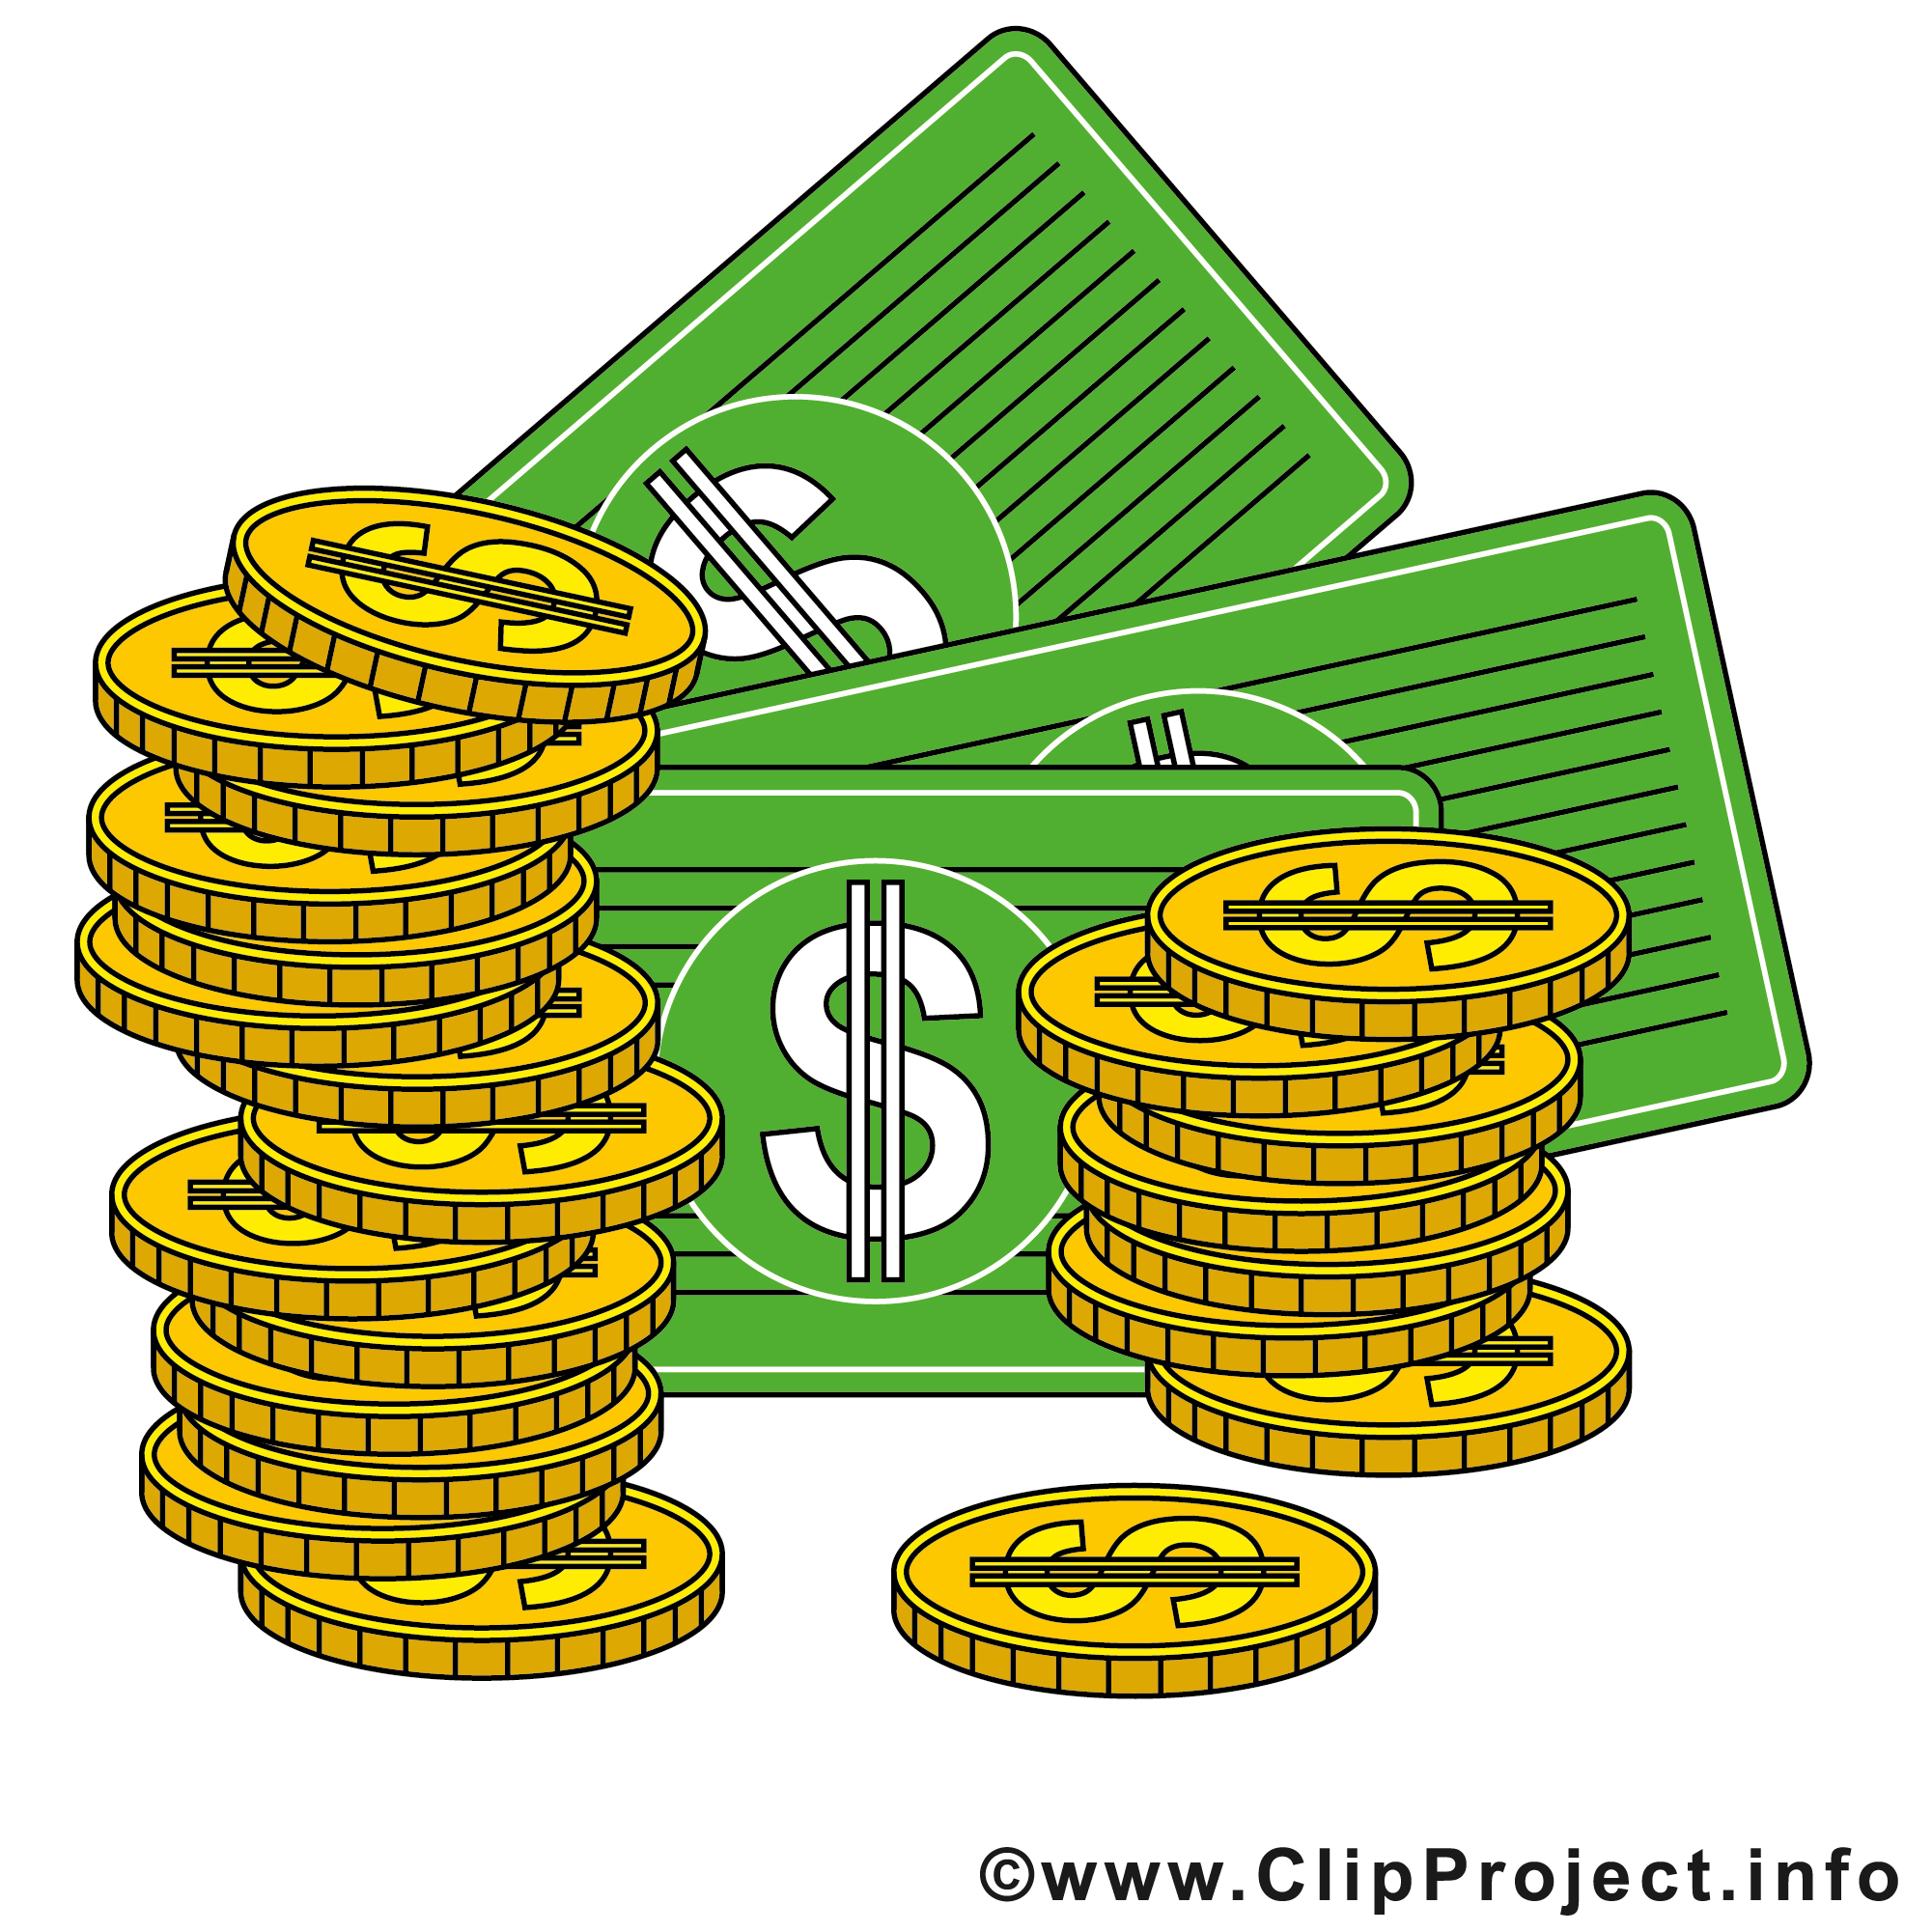 Clipart Of Money-clipart of money-5